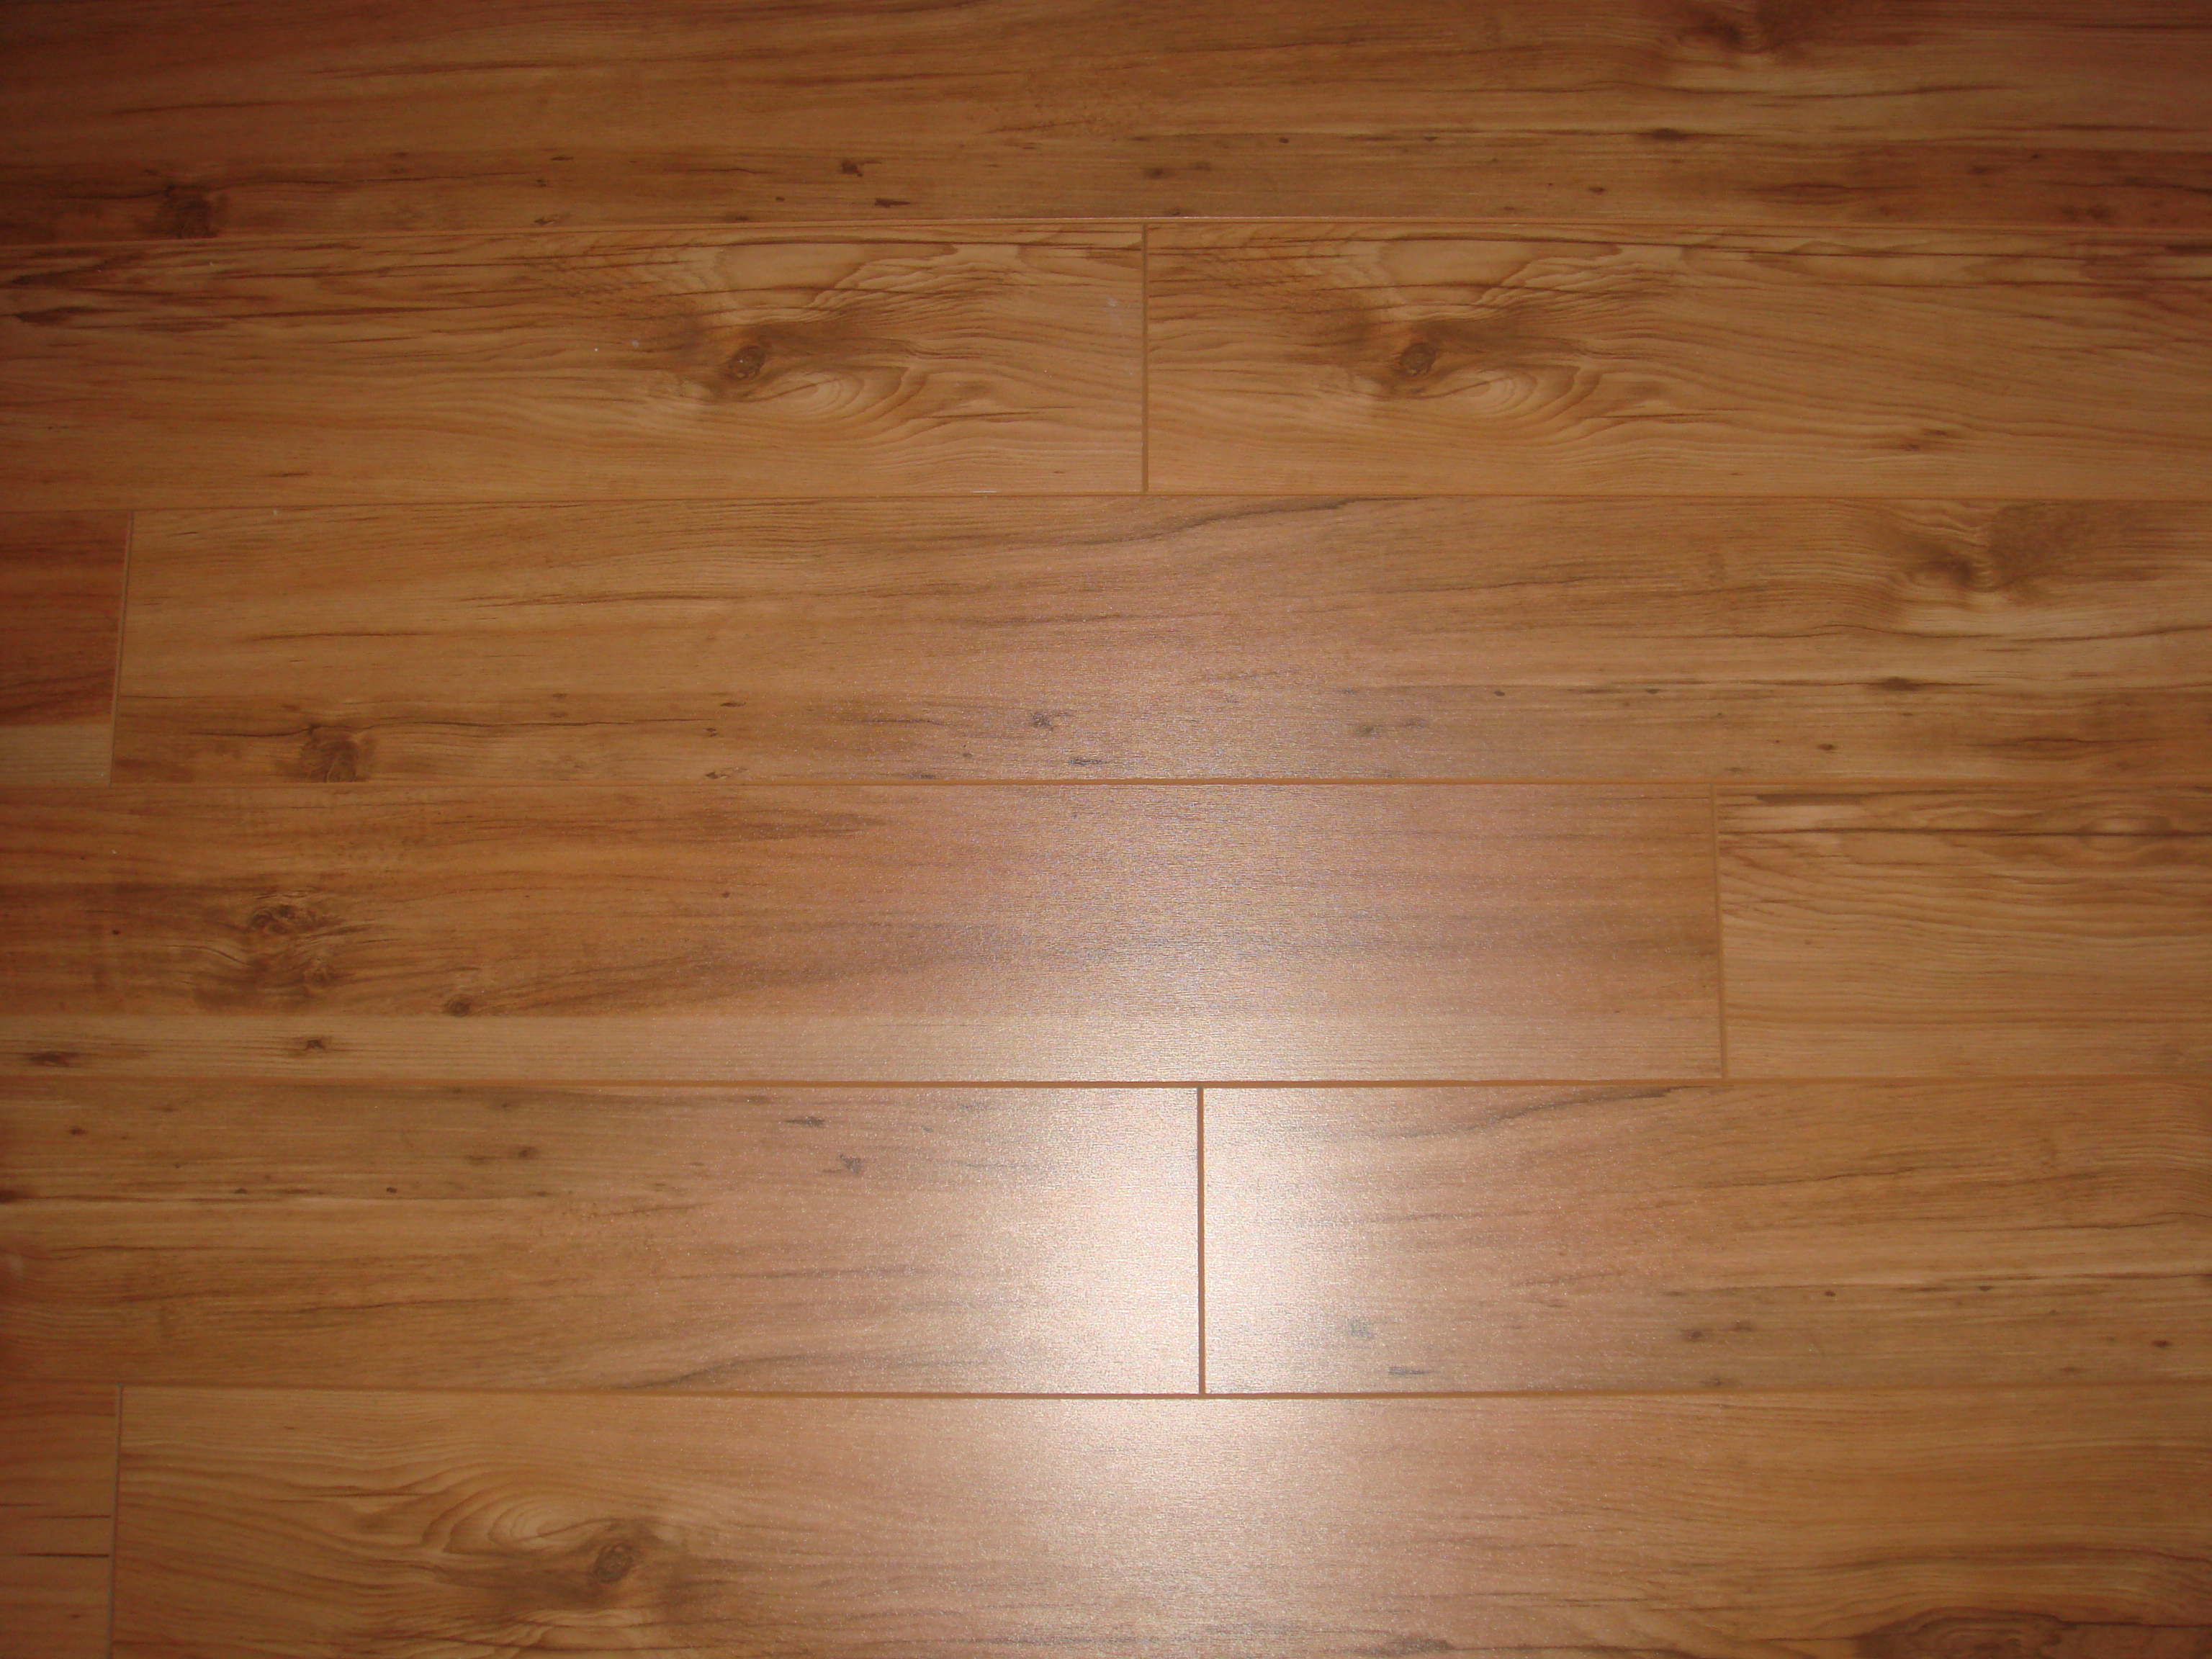 best laminate wood flooring - Best Laminate Wood Floors